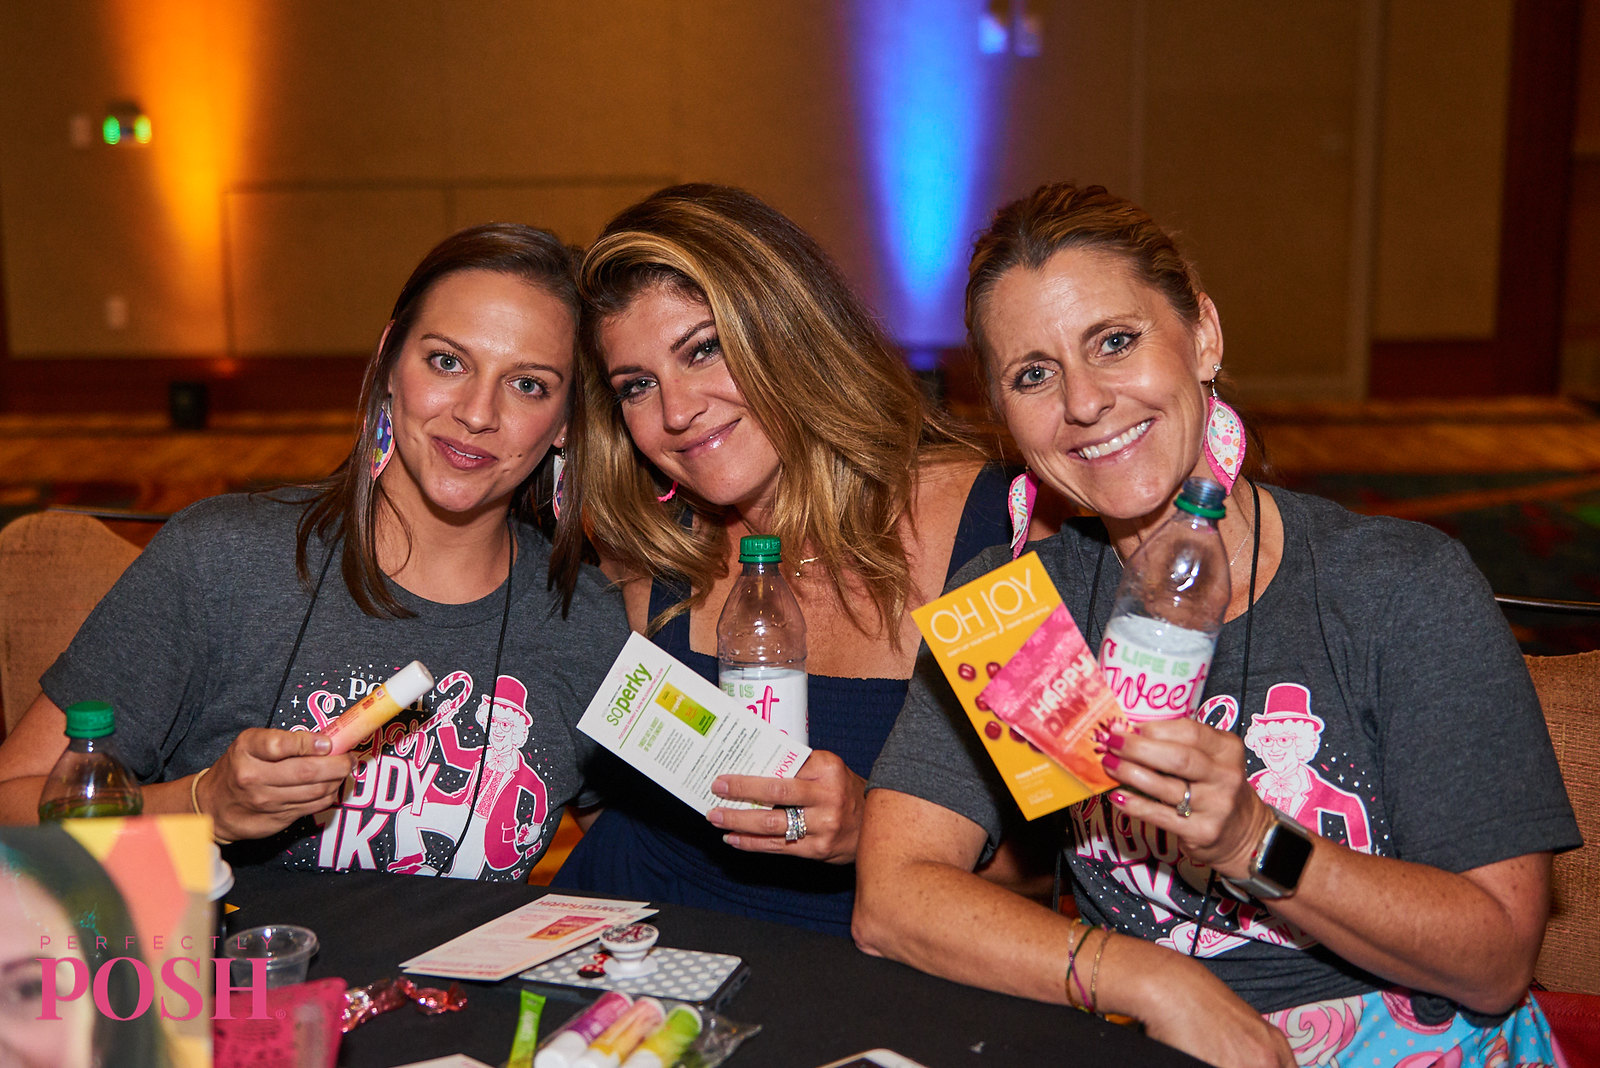 Perfectly Posh Influencers show off new Knosh products at Posh Night UnCon 2019